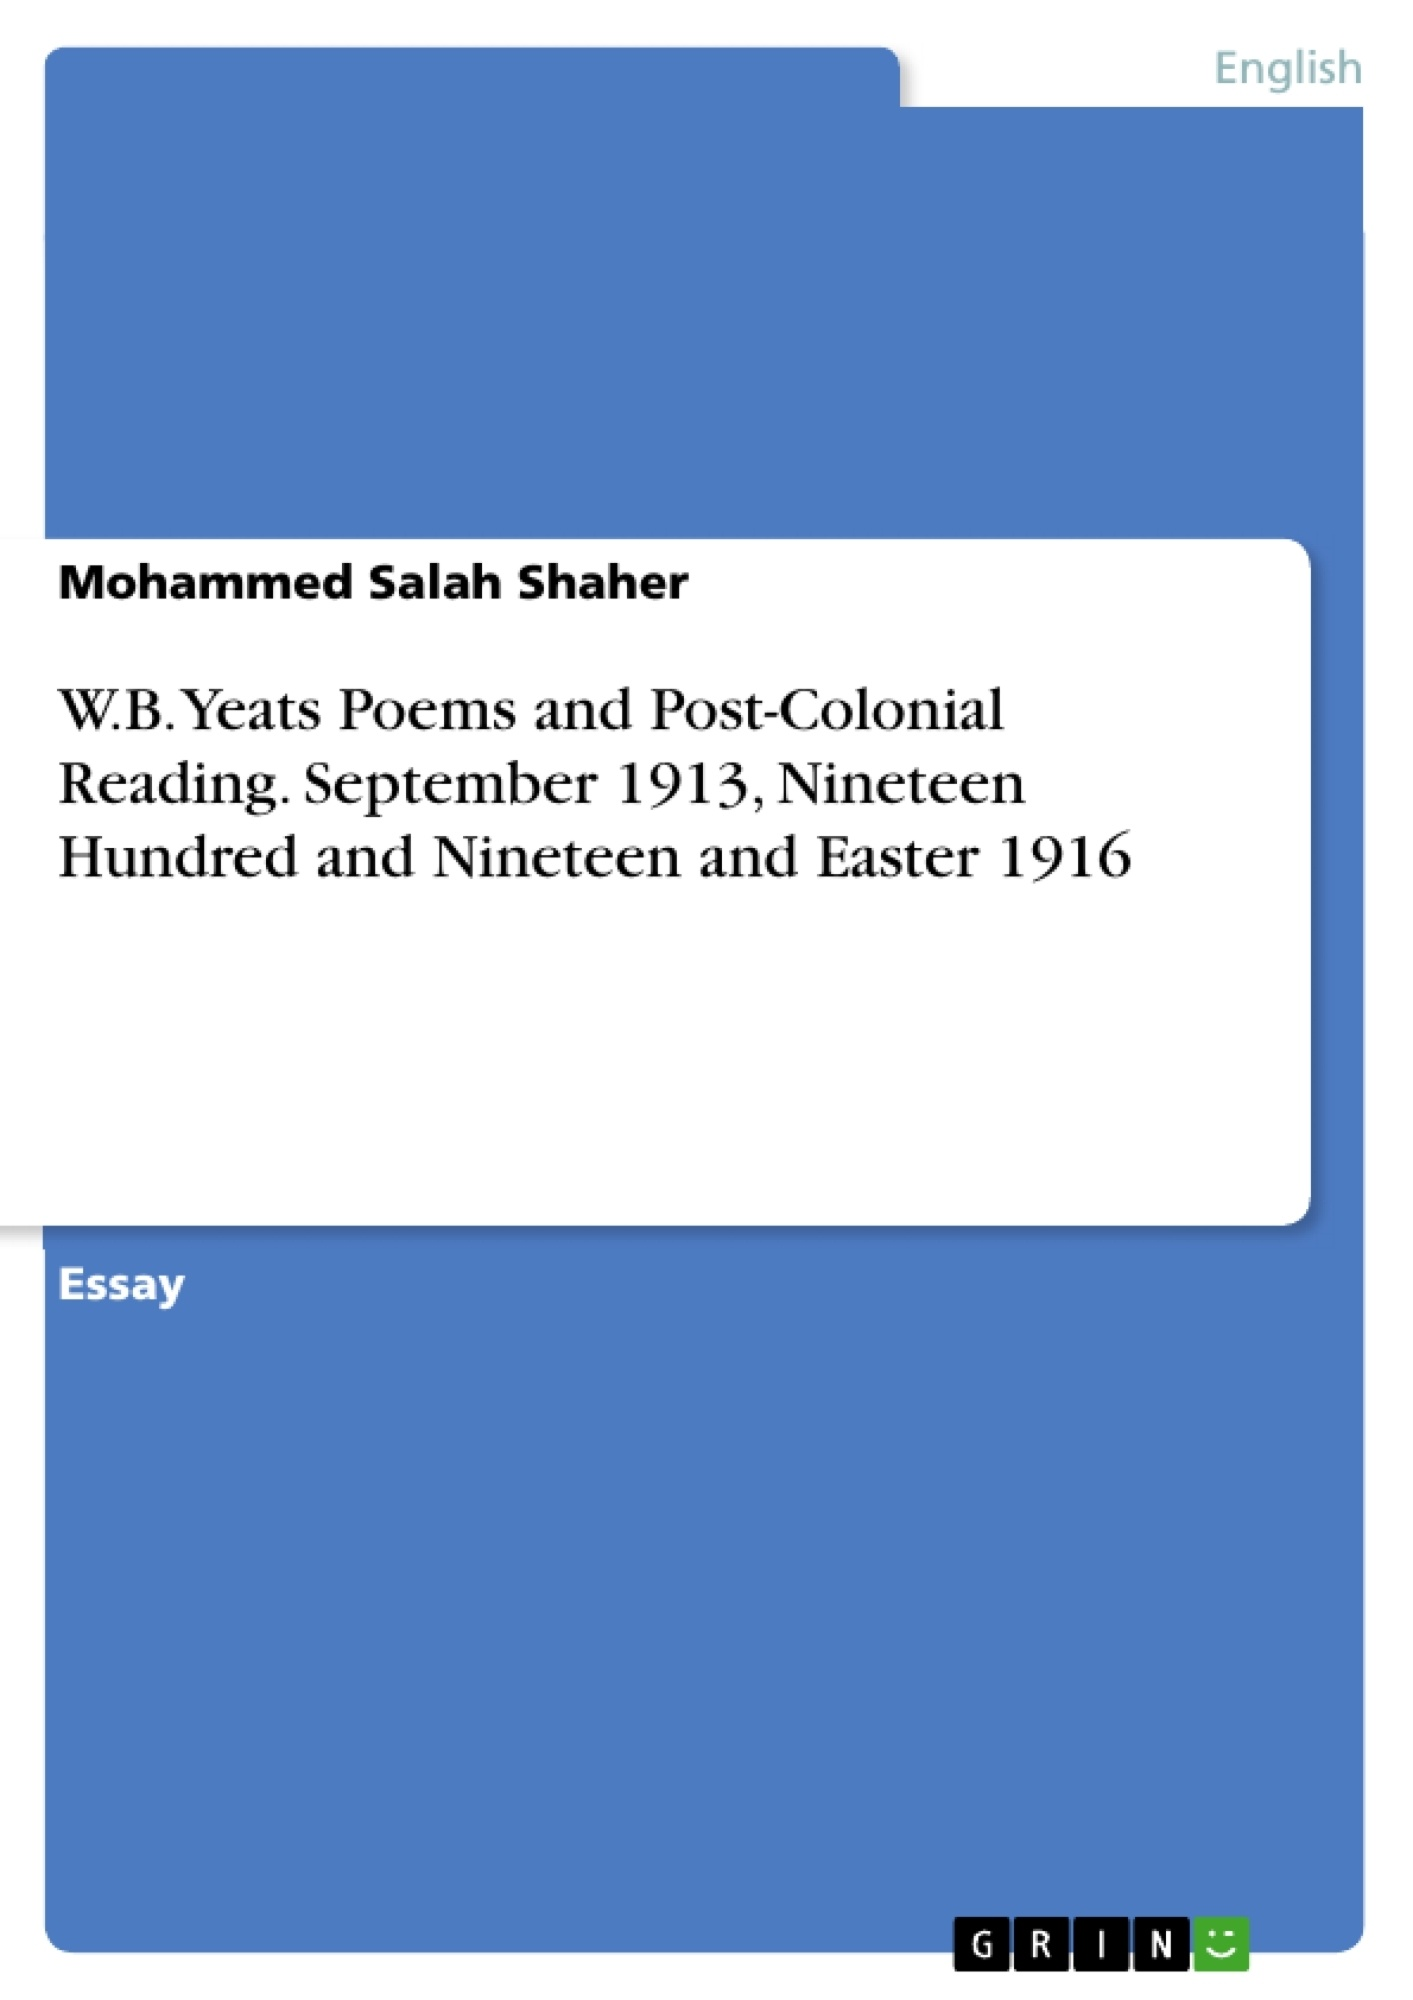 Title: W.B. Yeats Poems and Post-Colonial Reading. September 1913, Nineteen Hundred and Nineteen and Easter 1916